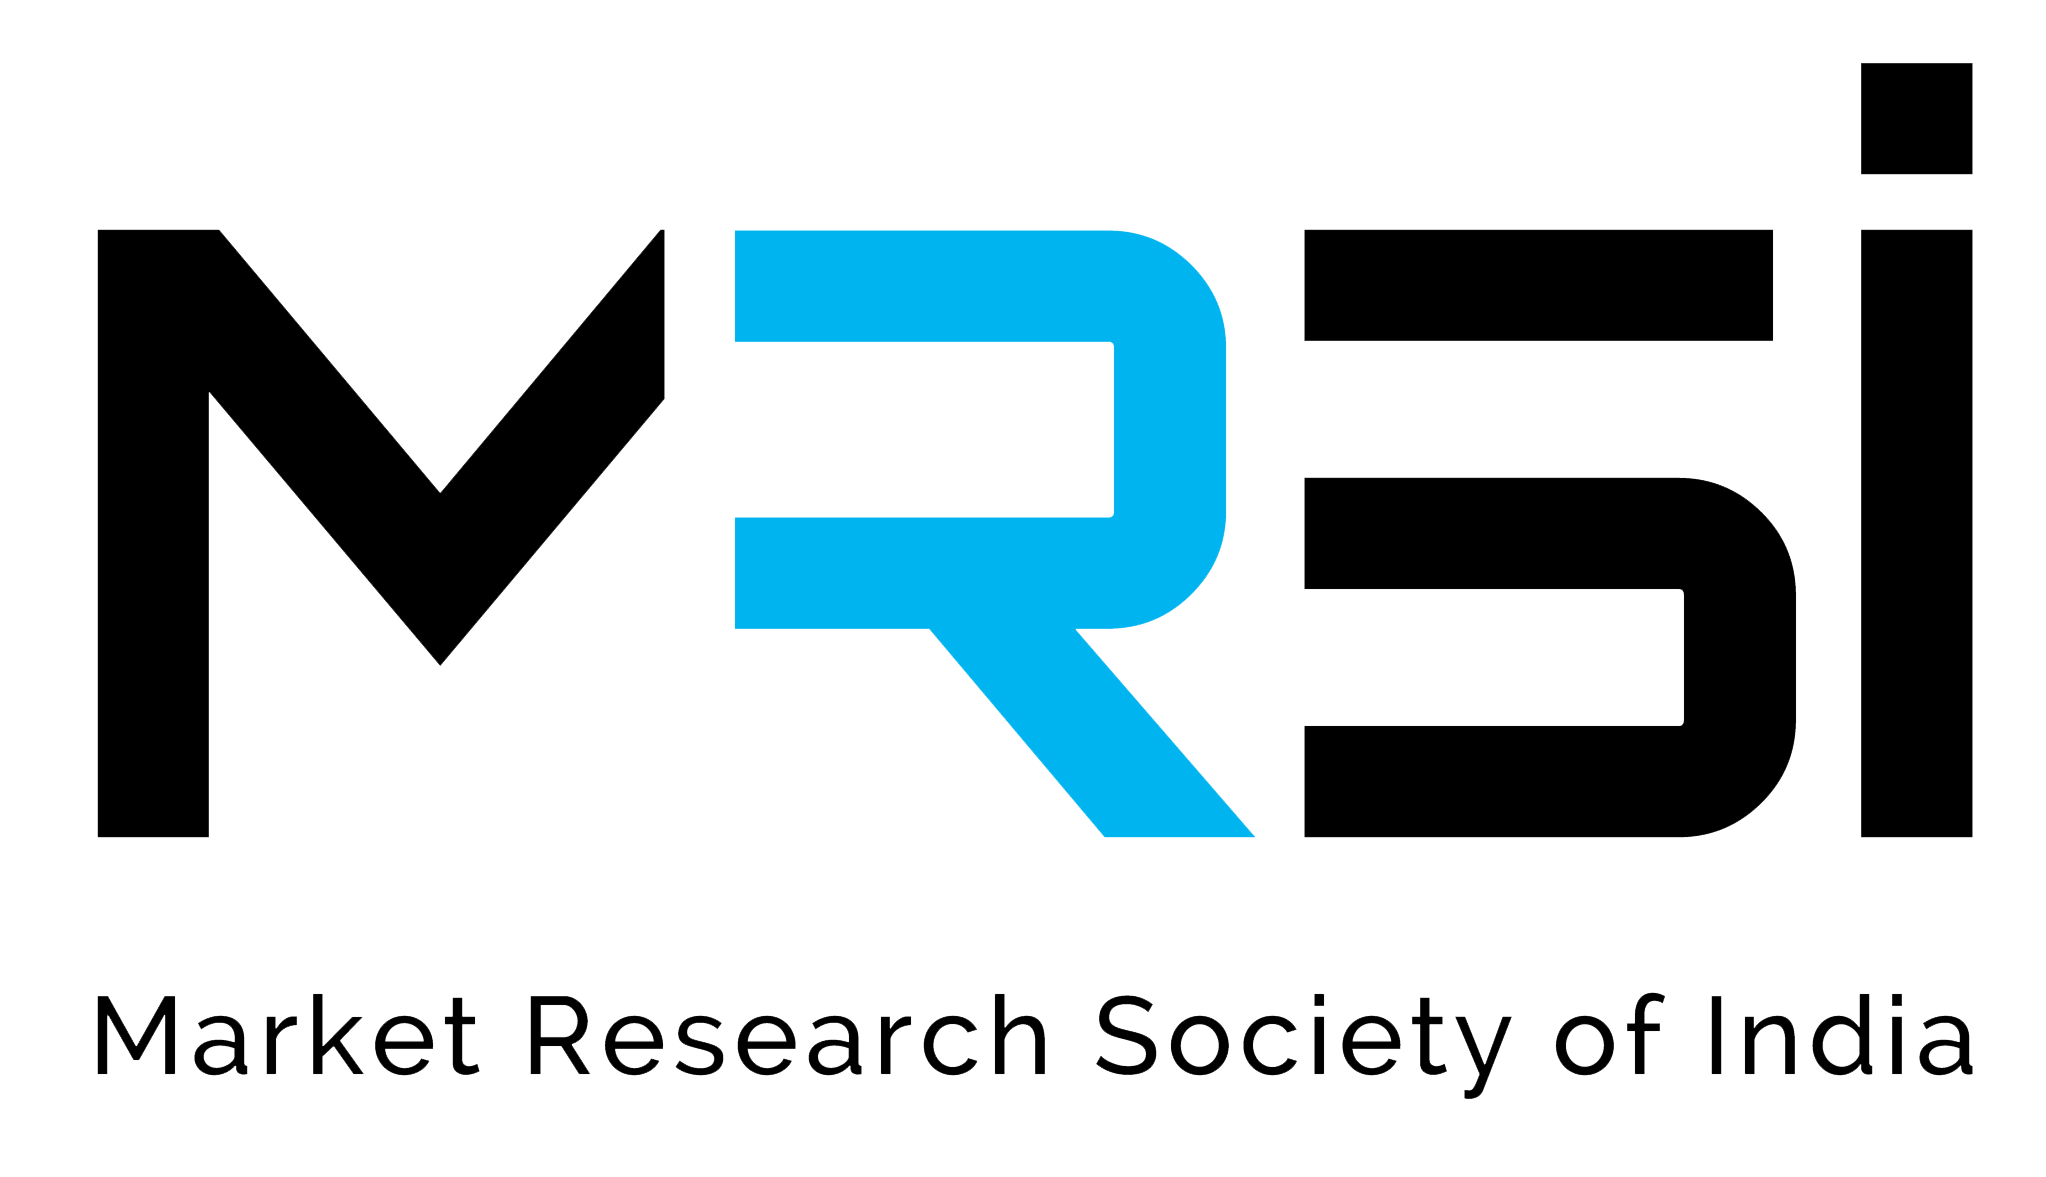 Market Research Society Of India